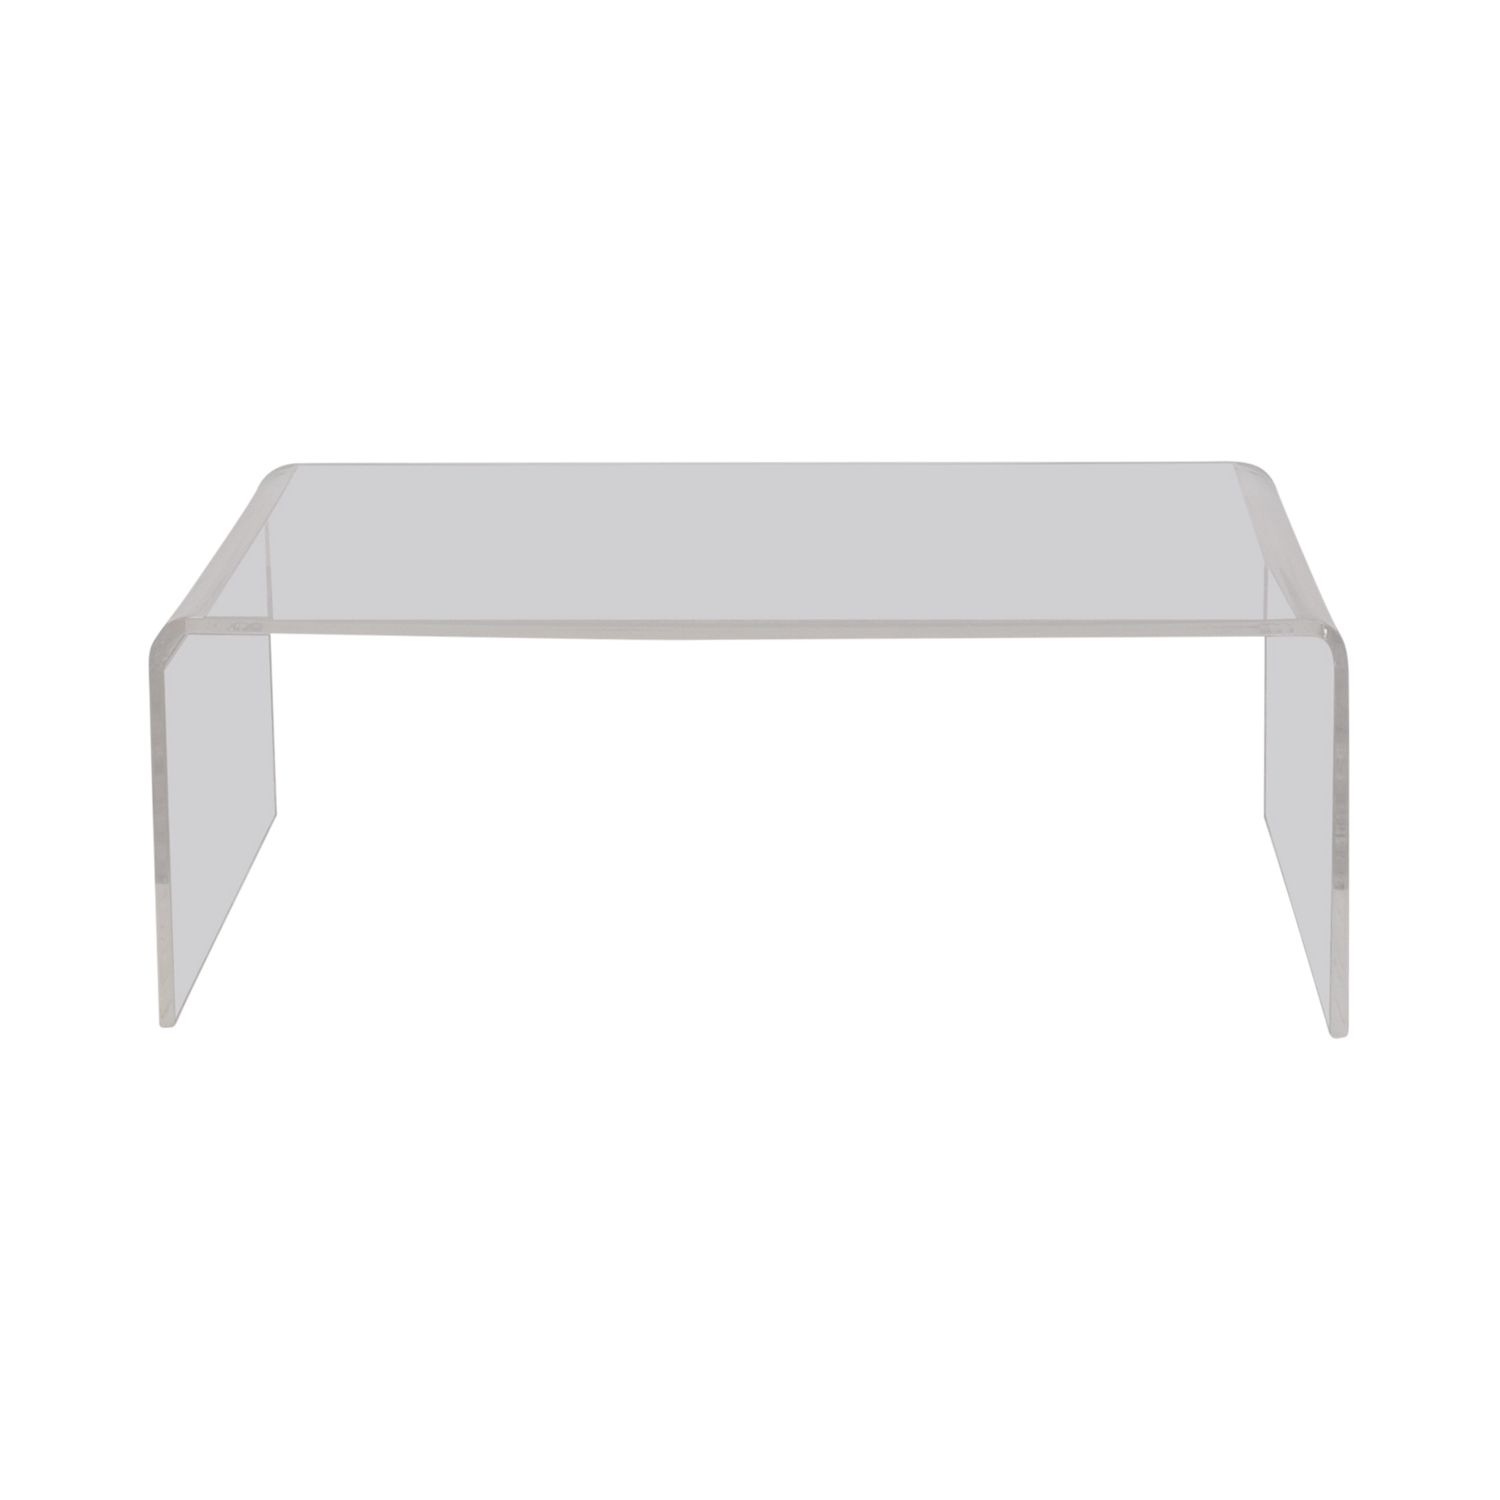 [%Most Popular Peekaboo Acrylic Coffee Tables Intended For 67% Off – Cb2 Cb2 Peekaboo Acrylic Coffee Table / Tables|67% Off – Cb2 Cb2 Peekaboo Acrylic Coffee Table / Tables For Well Liked Peekaboo Acrylic Coffee Tables%] (View 1 of 20)